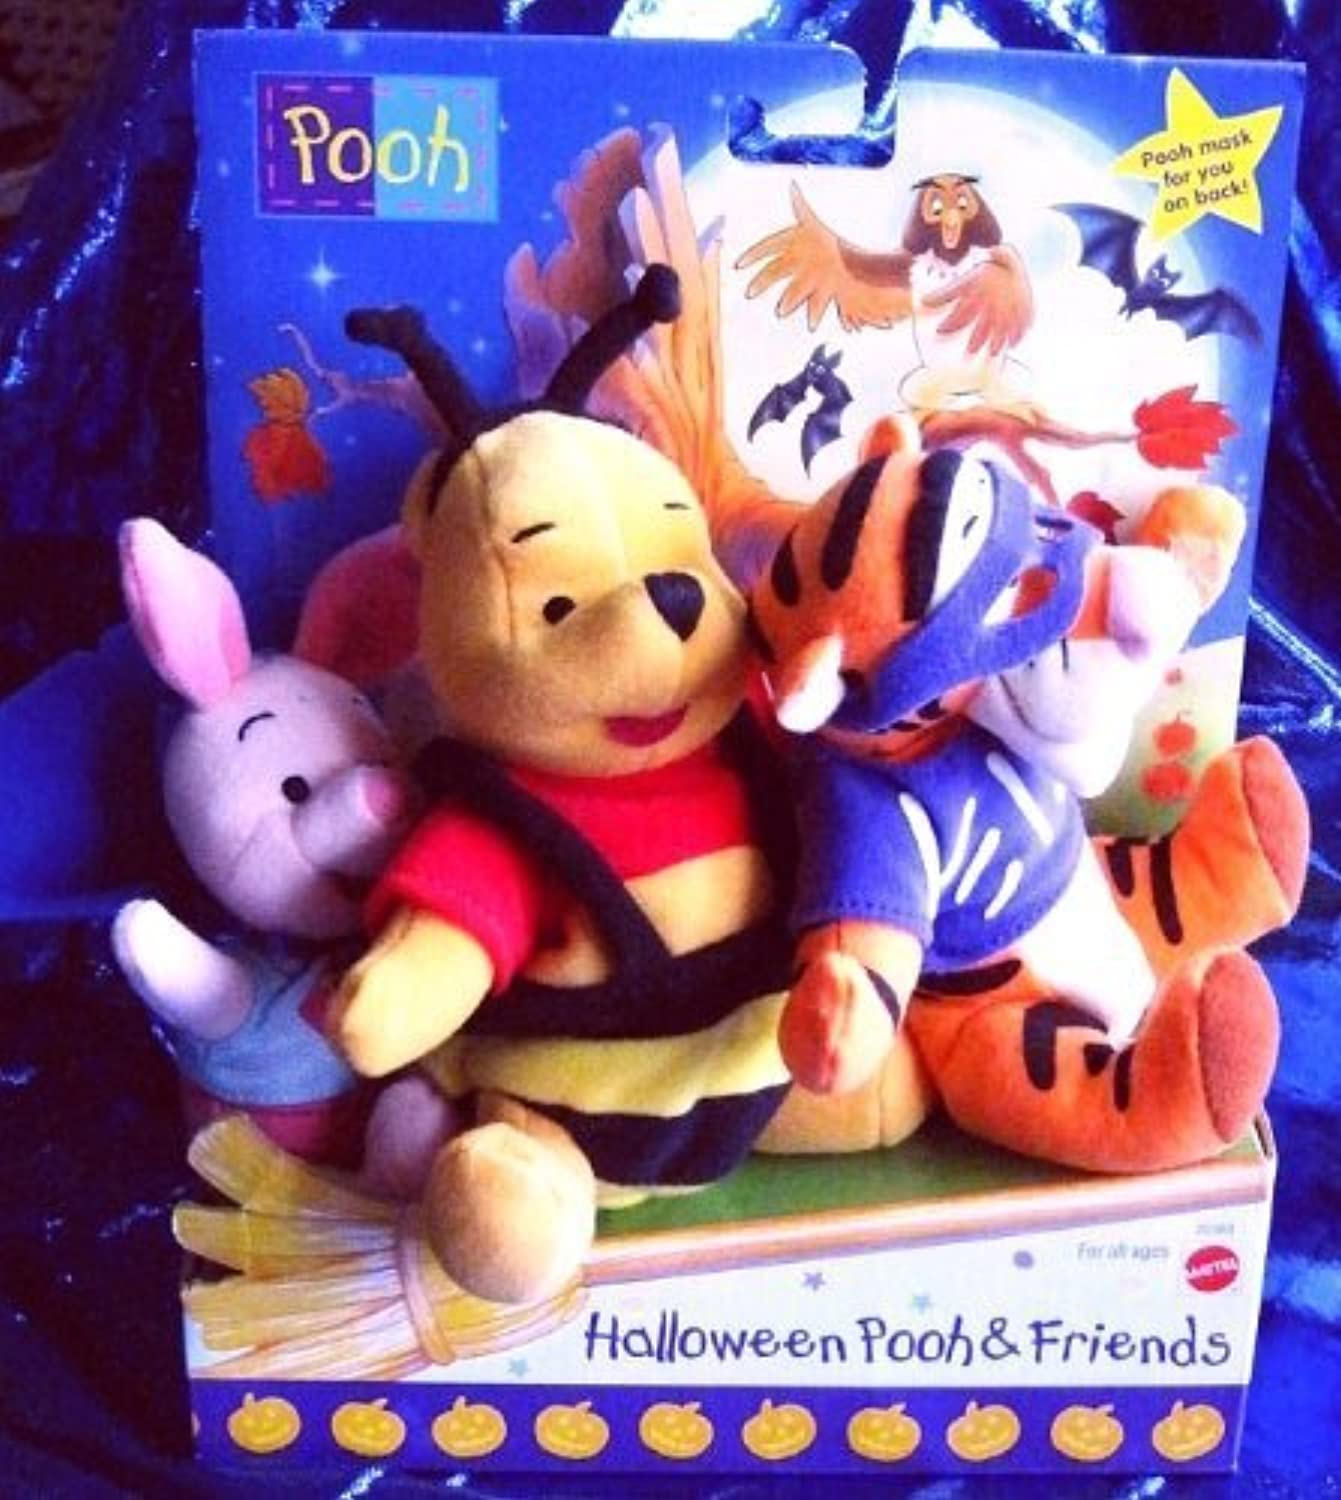 Halloween Pooh & Friends (Winnie the Pooh, Tigger & Piglet all in Halloween Costumes) by Winnie the Pooh